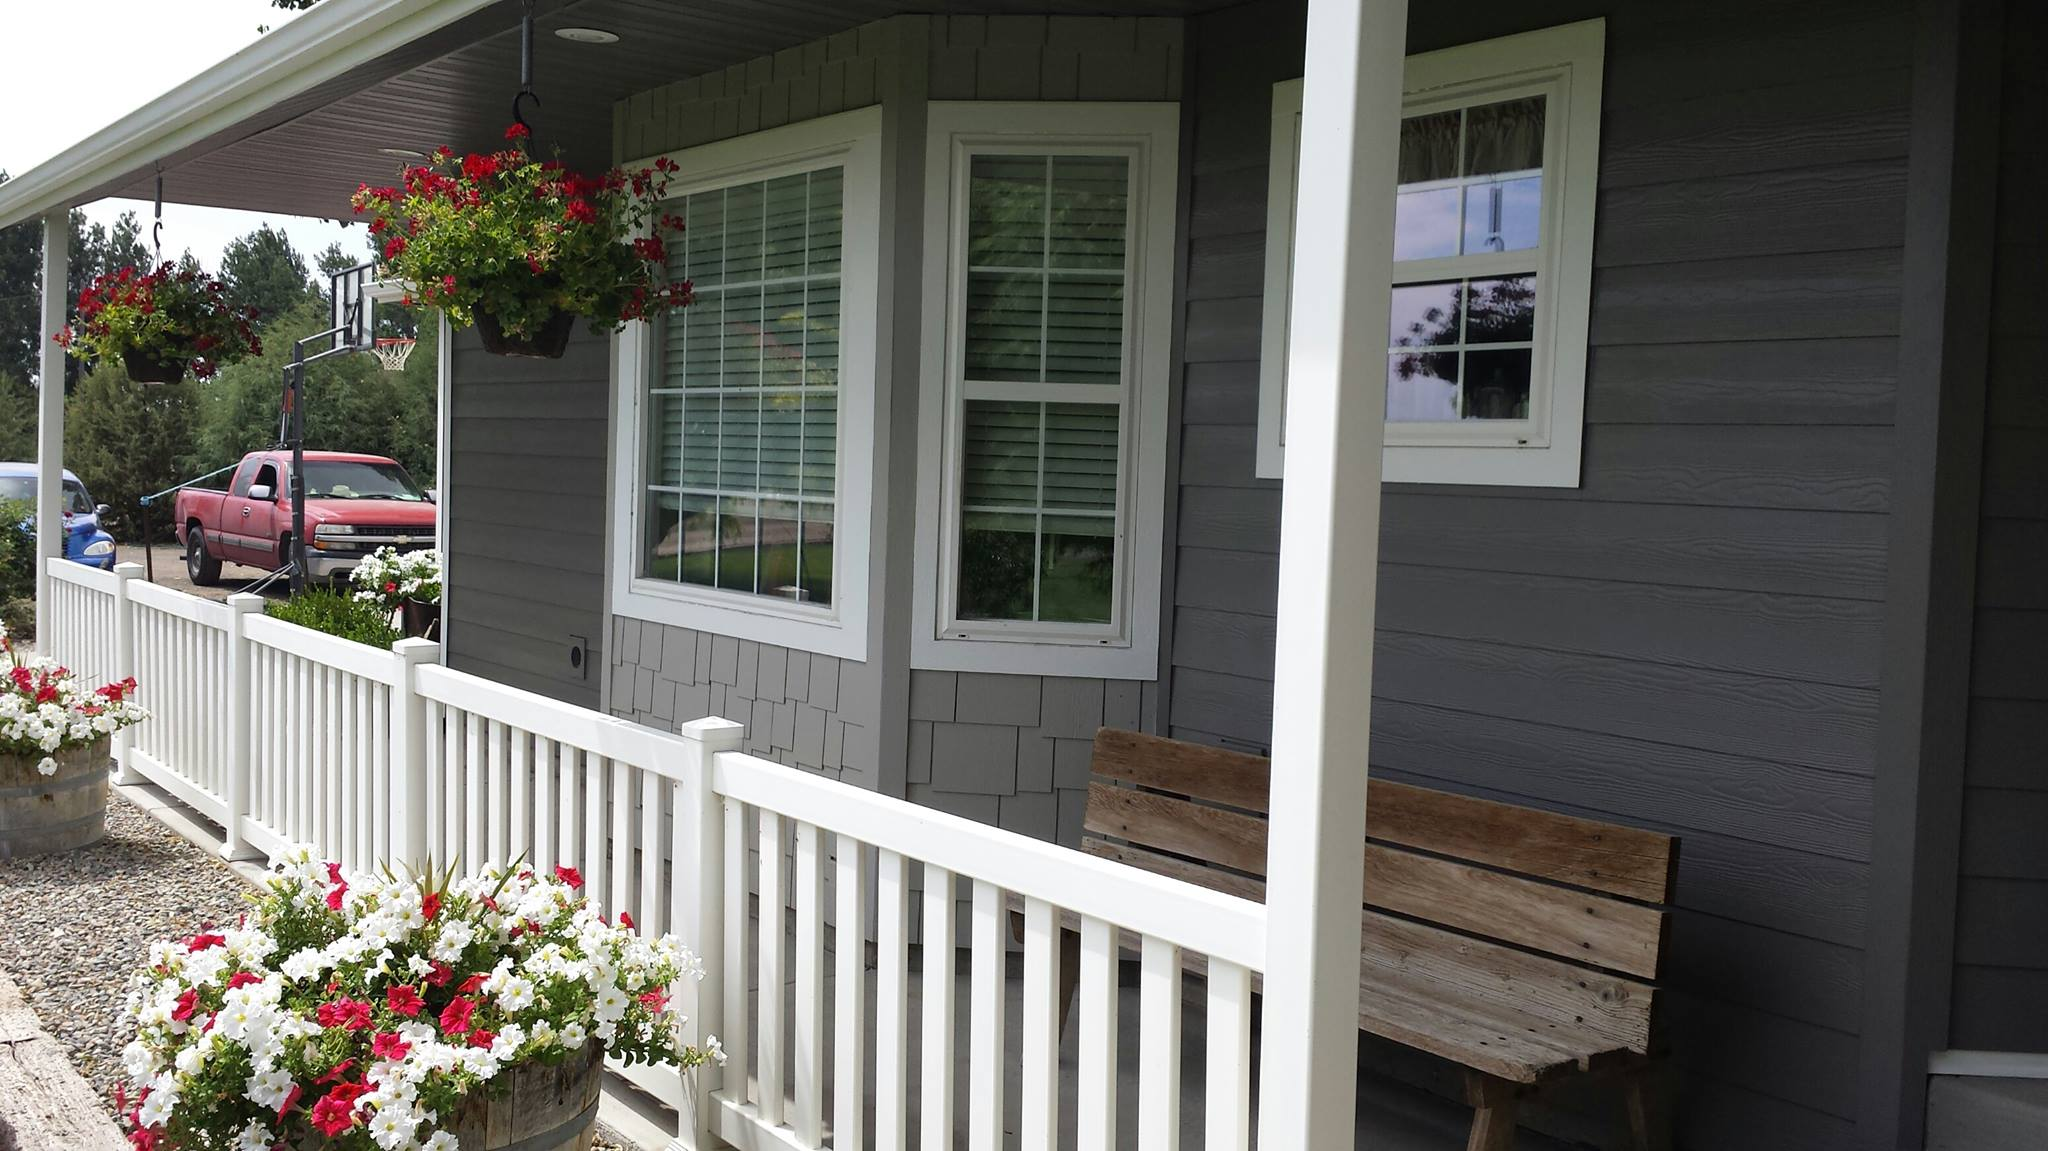 Delightful fiber cement siding vs vinyl siding cost Fiber cement siding vs vinyl siding cost comparison